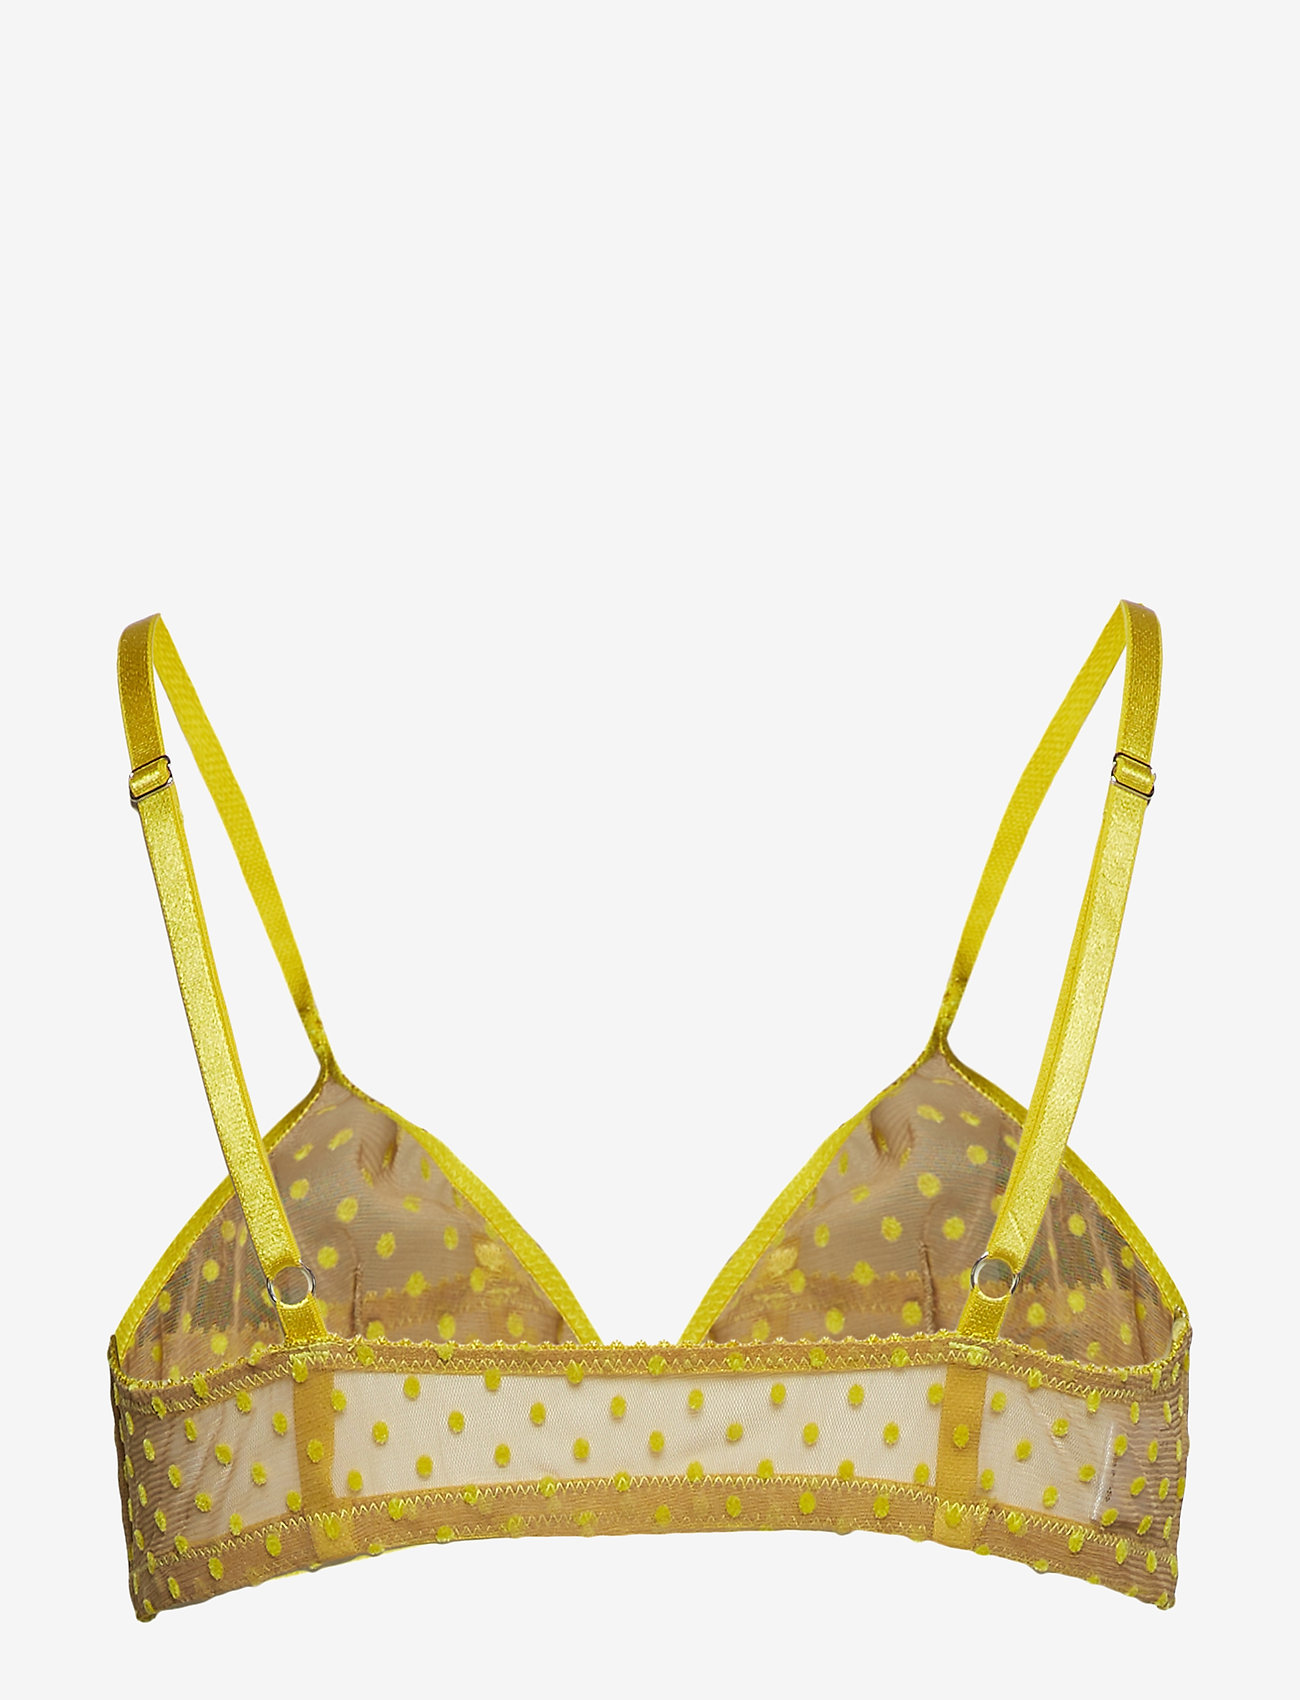 Underprotection - Donna bra - bra without wire - yellow